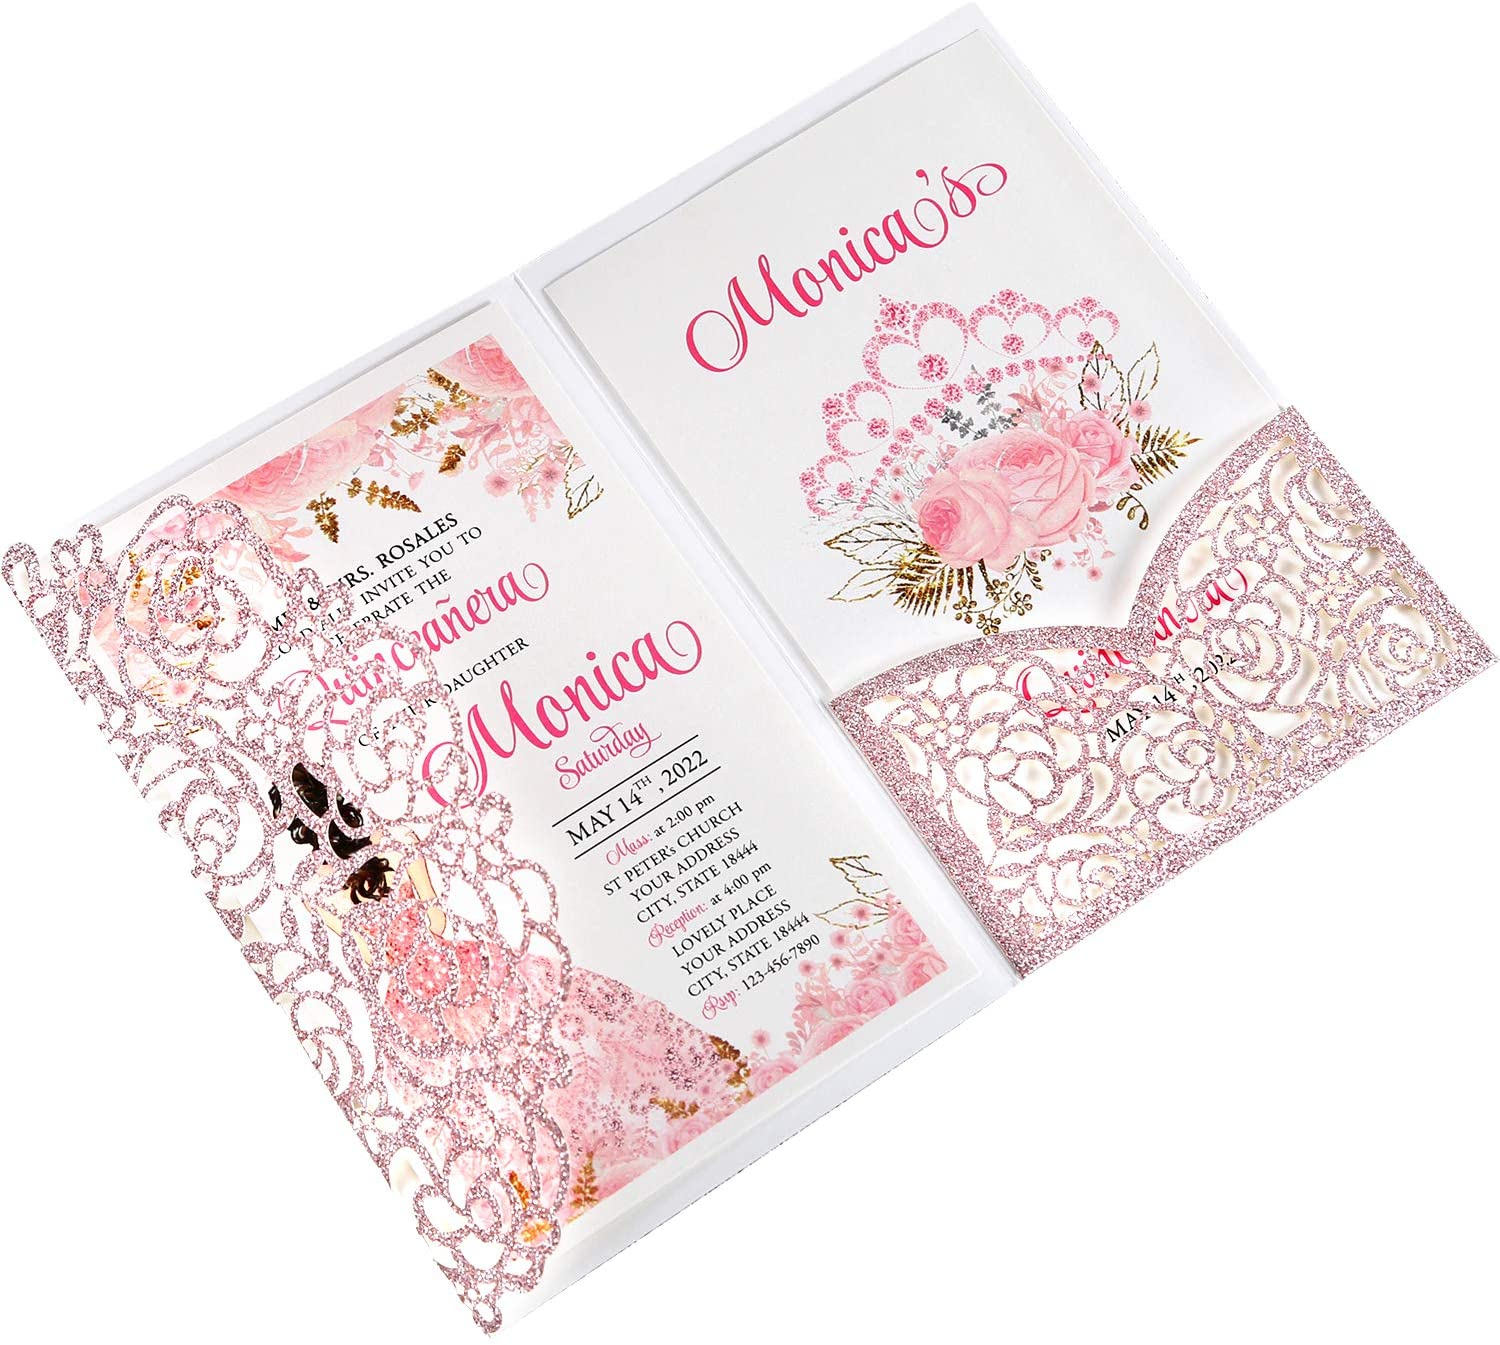 DreamBuilt 4.7 x7 inch 50PCS Blank Rose Gold Glitter Quinceanera Invitations Kit Laser Cut Hollow Rose Pocket Quinceanera Invitation Cards with Envelopes for Bridal Shower Quincenera Birthday Invite